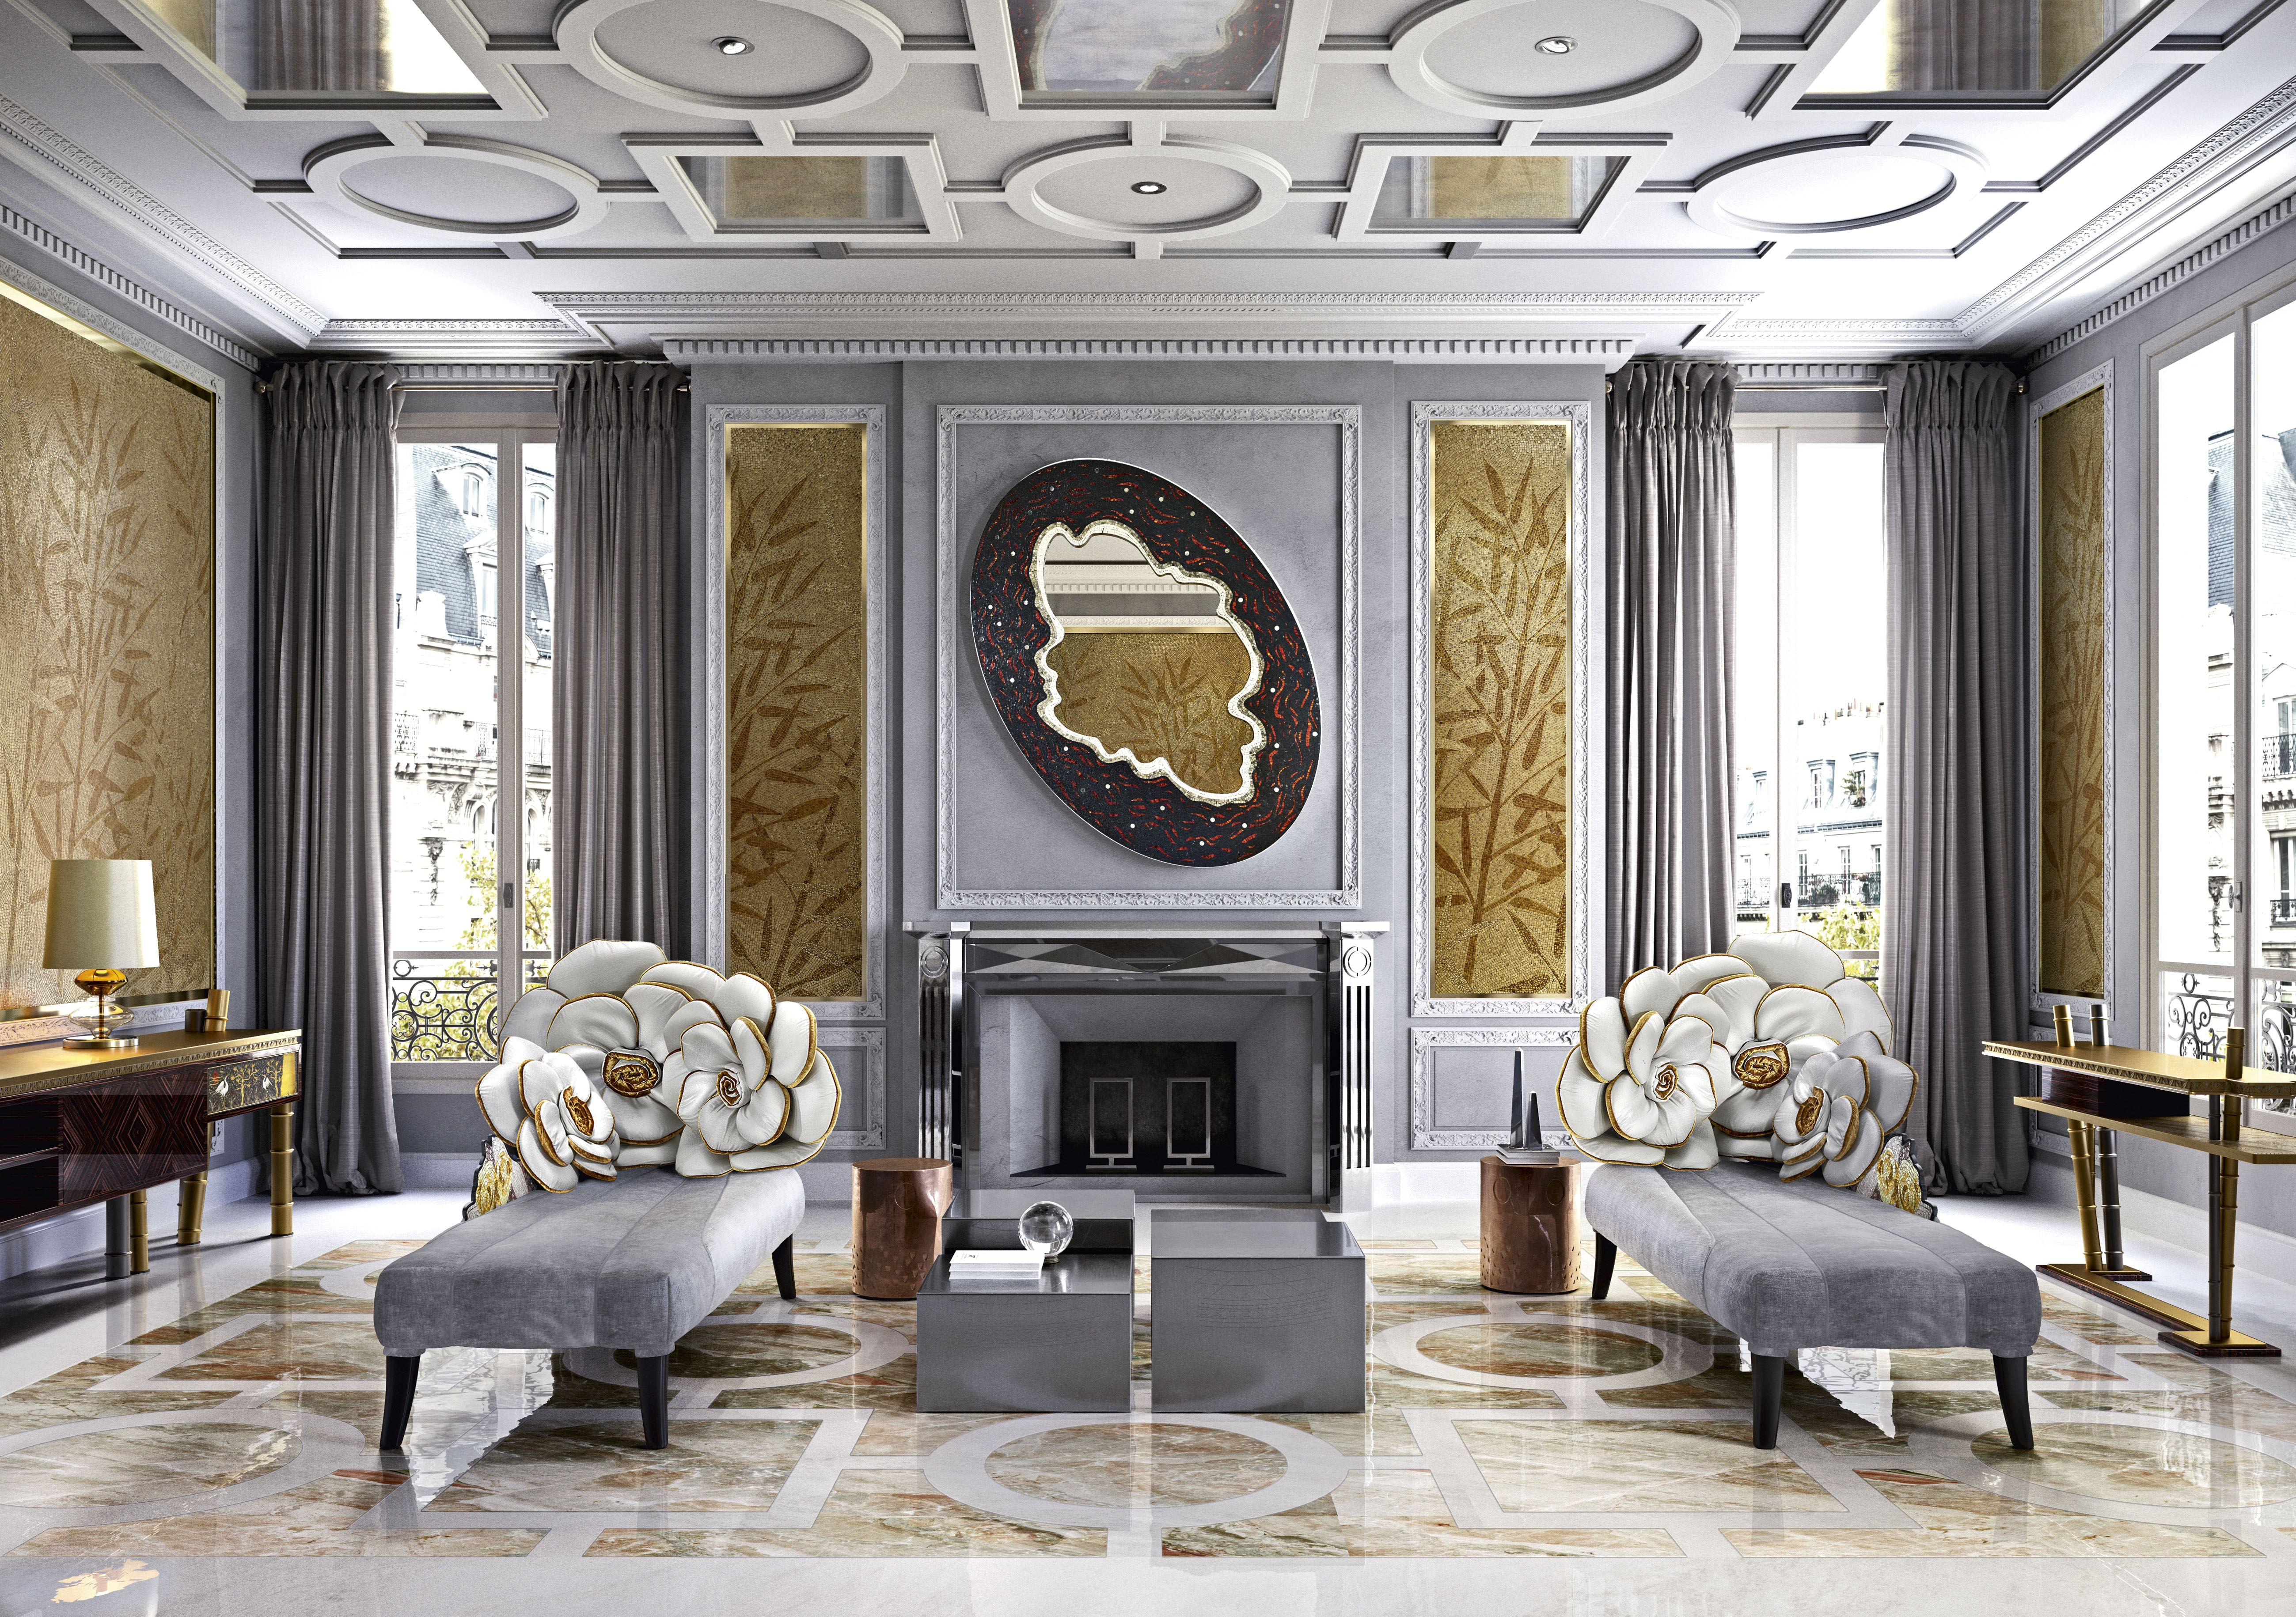 How to create a feature wall with photos - Design Idea Use Art Mosaic To Create Beautiful Feature Walls